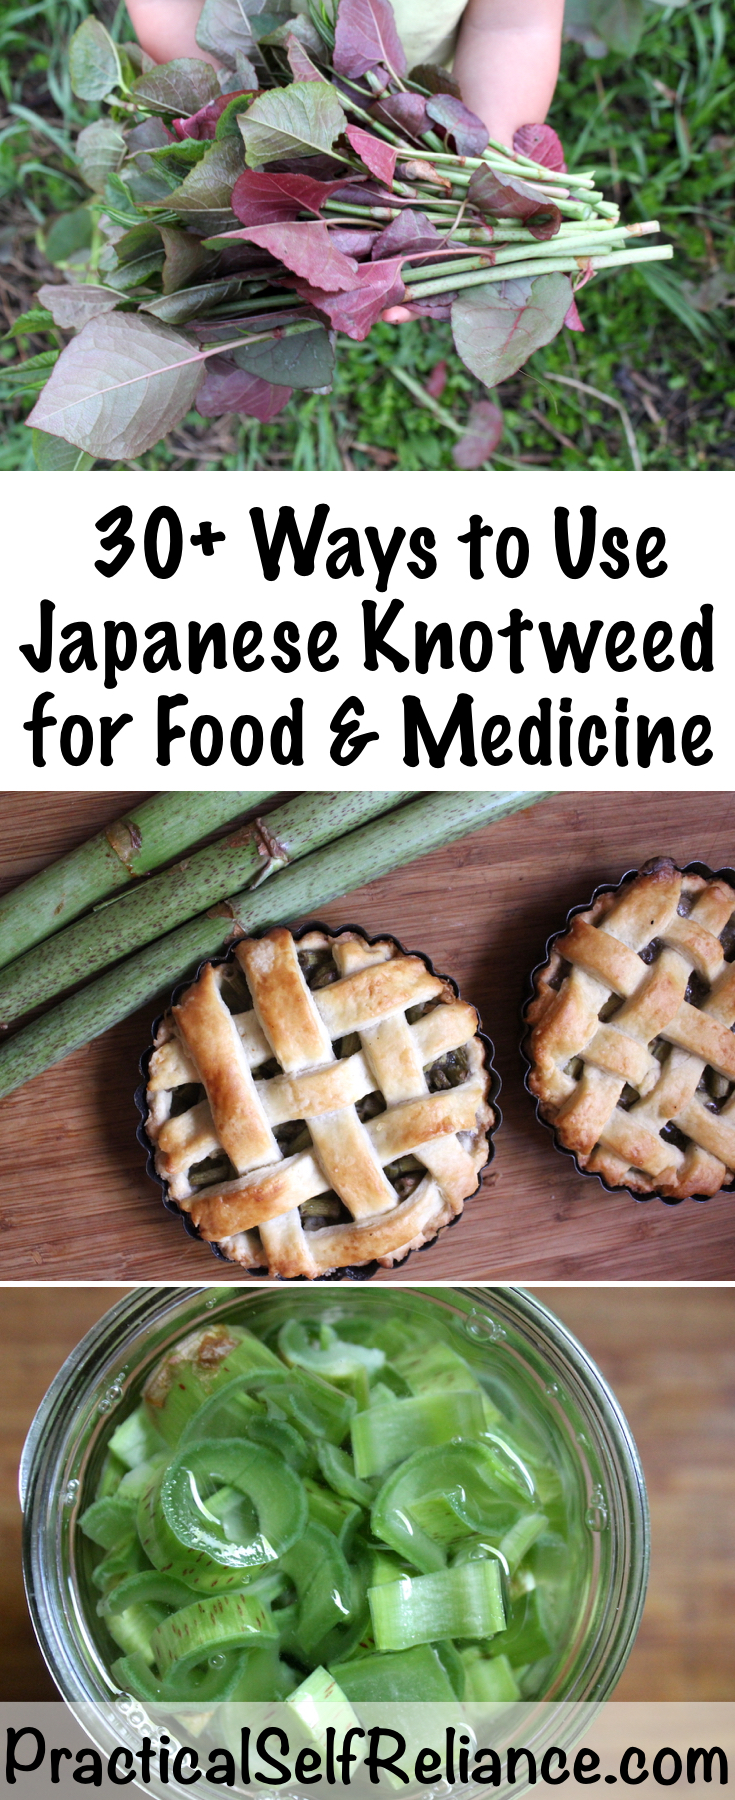 Using Japanese Knotweed for Food and Medicine